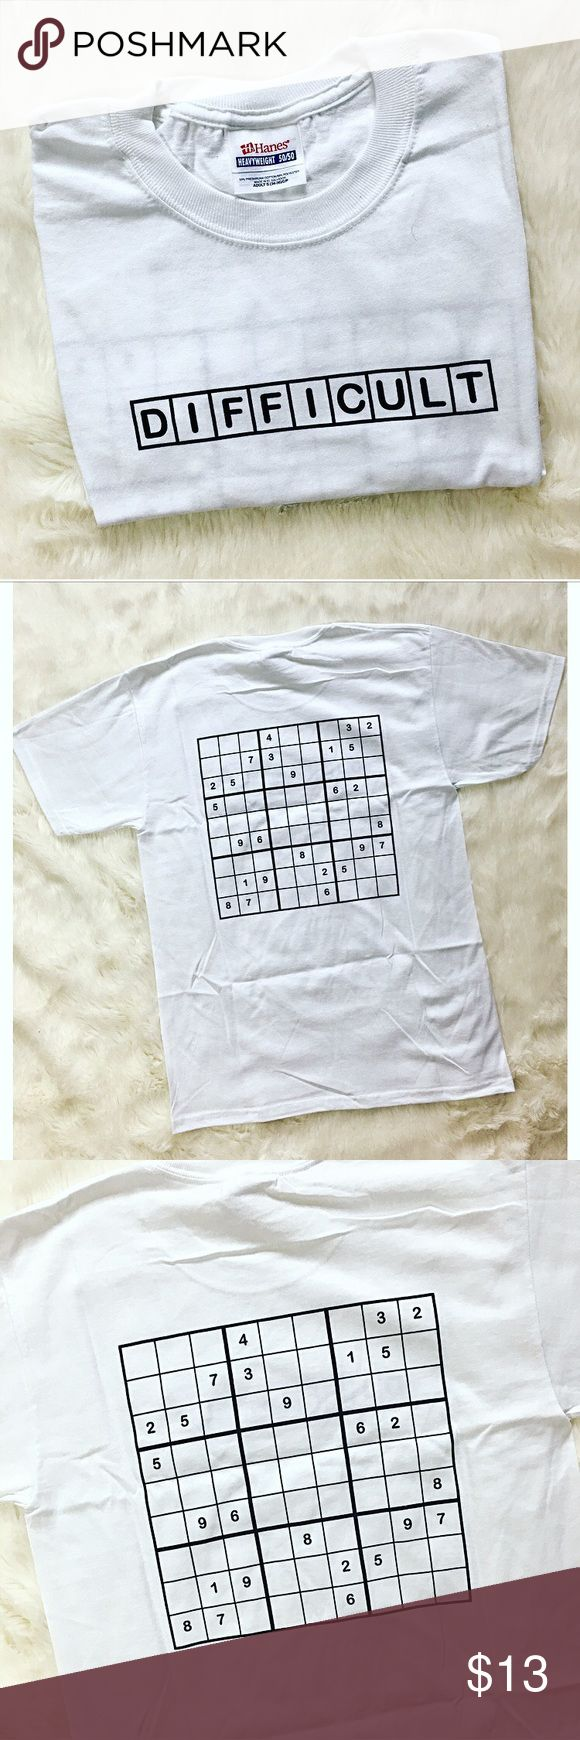 🆕 Sudoku Puzzle T-Shirt Unisex fit.  Perfect for the puzzle lovers!  A t-shirt with a difficult sudoku puzzle to fill in on the back.  Use washable marker to do it again and again!  Puzzle in photo is just an example, actual puzzle may vary in specificity but not level of difficulty. Shirts Tees - Short Sleeve